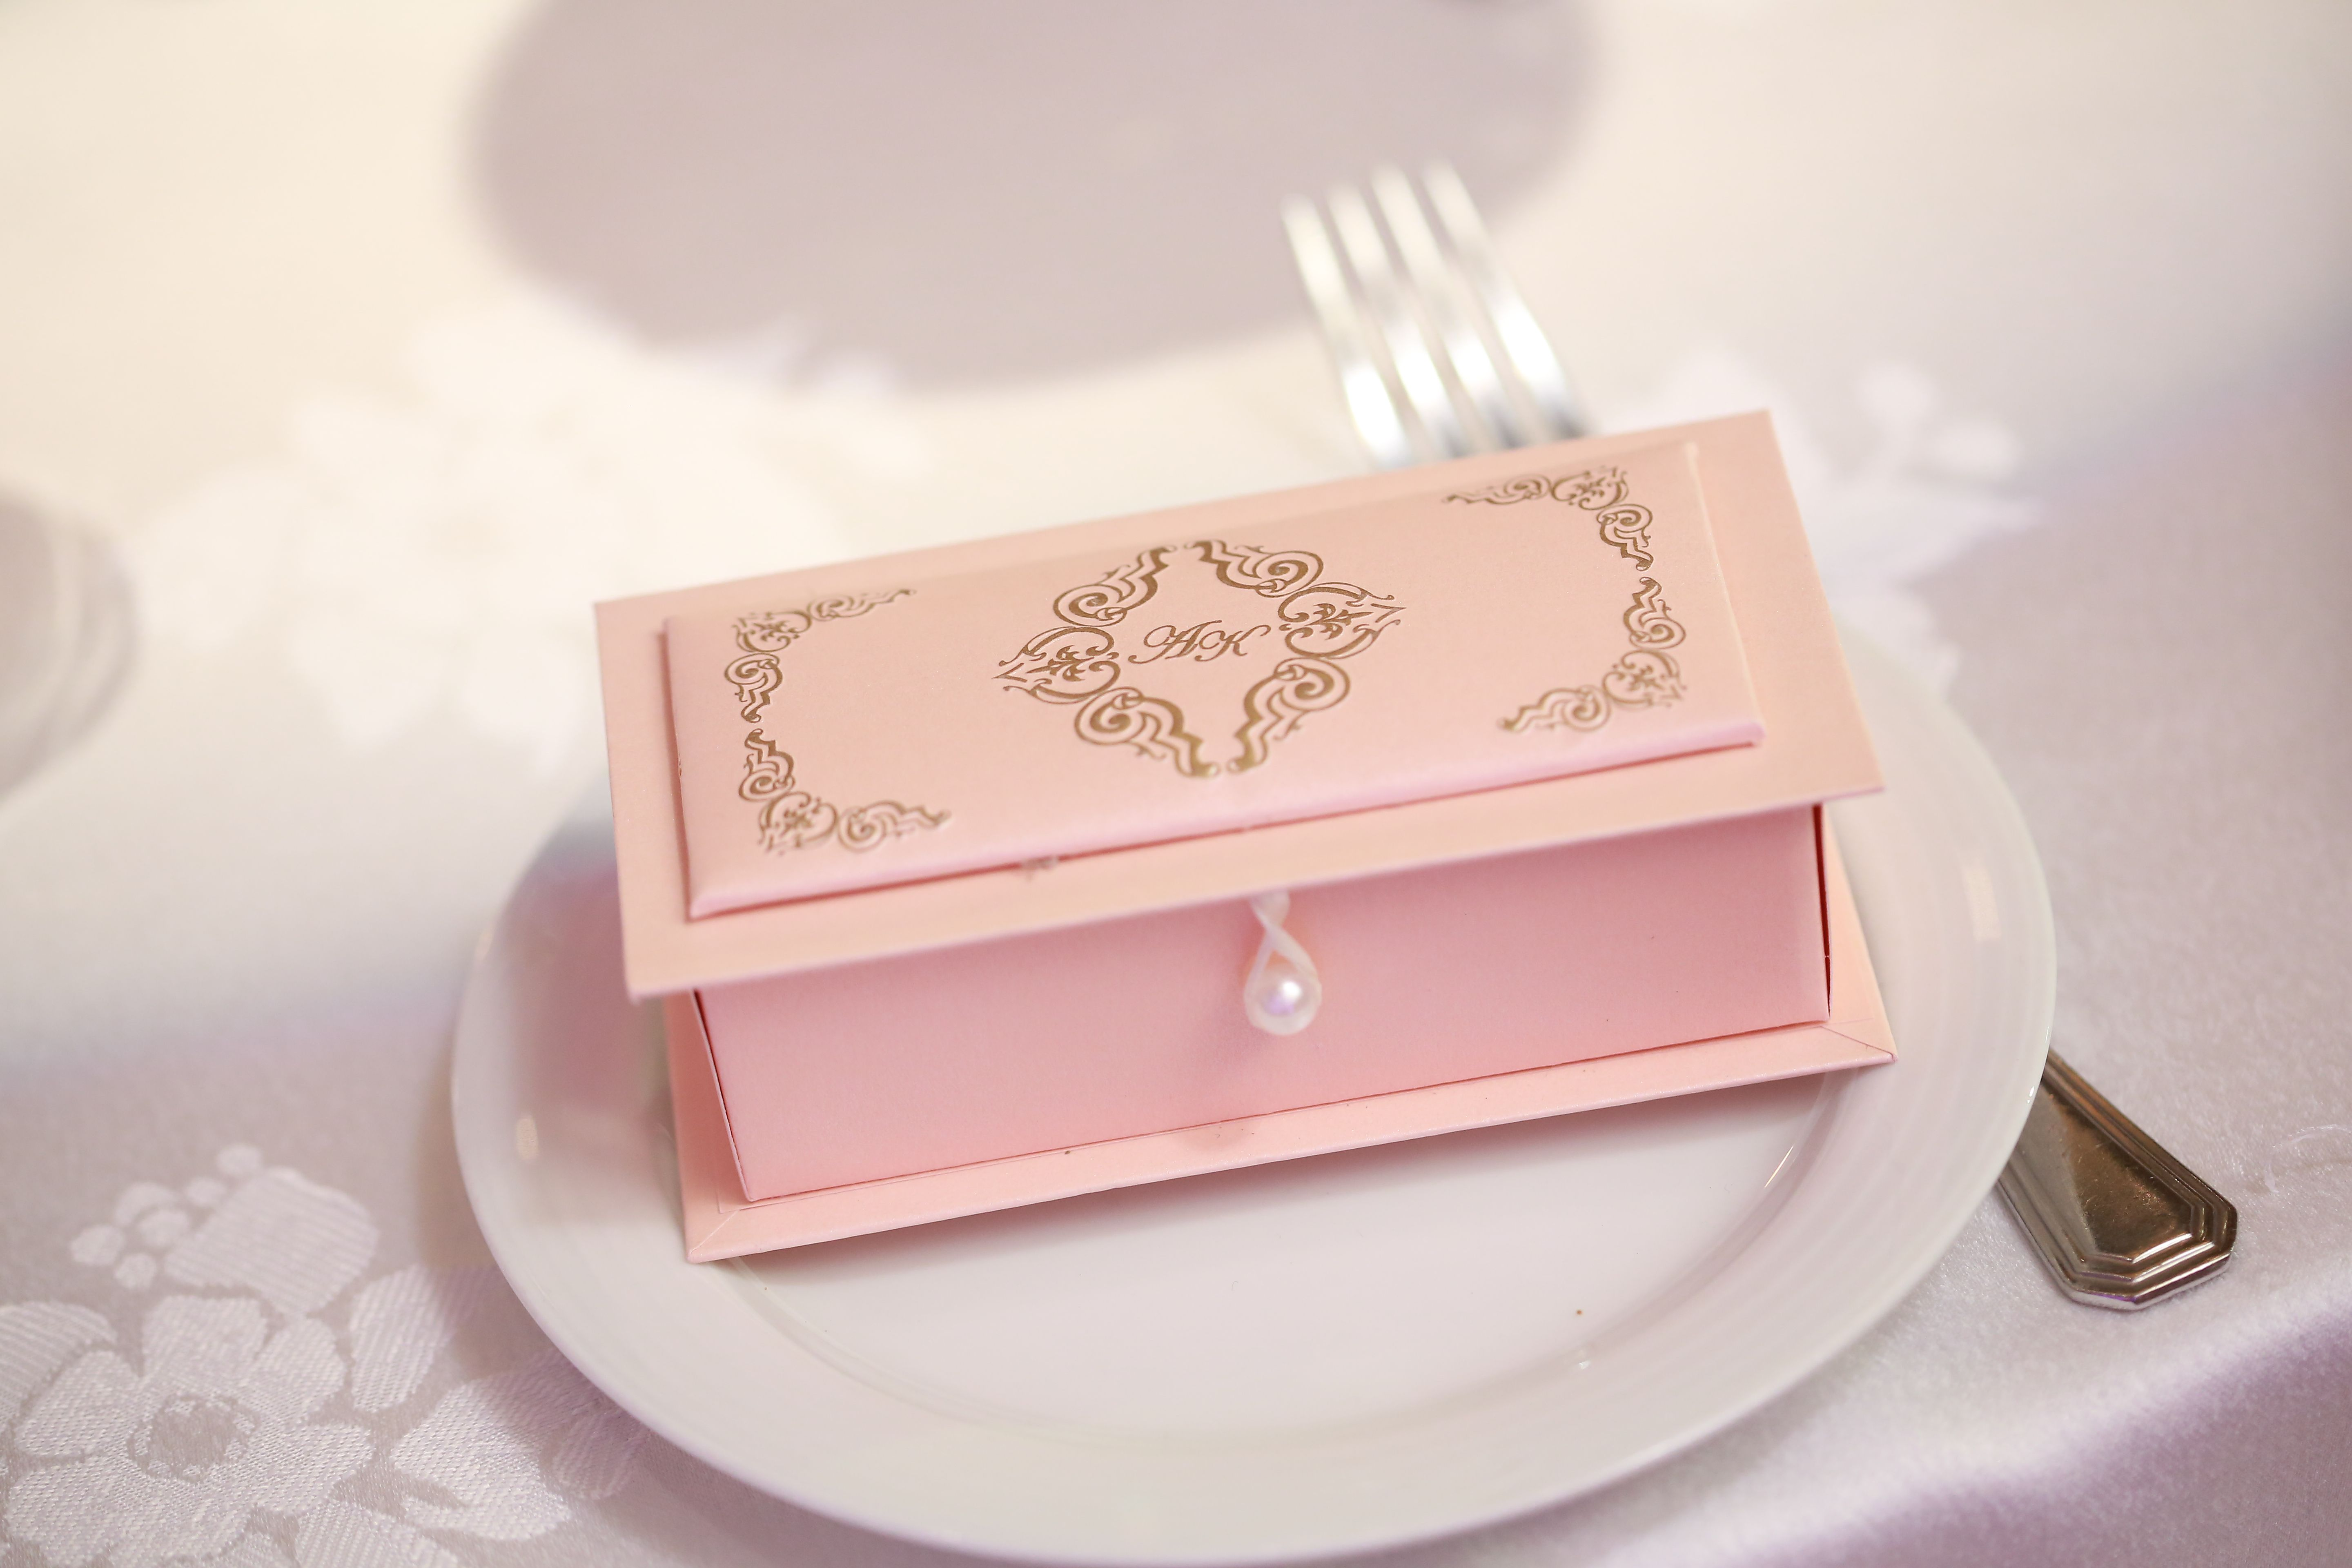 Sri lankan wedding cake box my sri lankan wedding for Wedding invitations cake boxes sri lanka